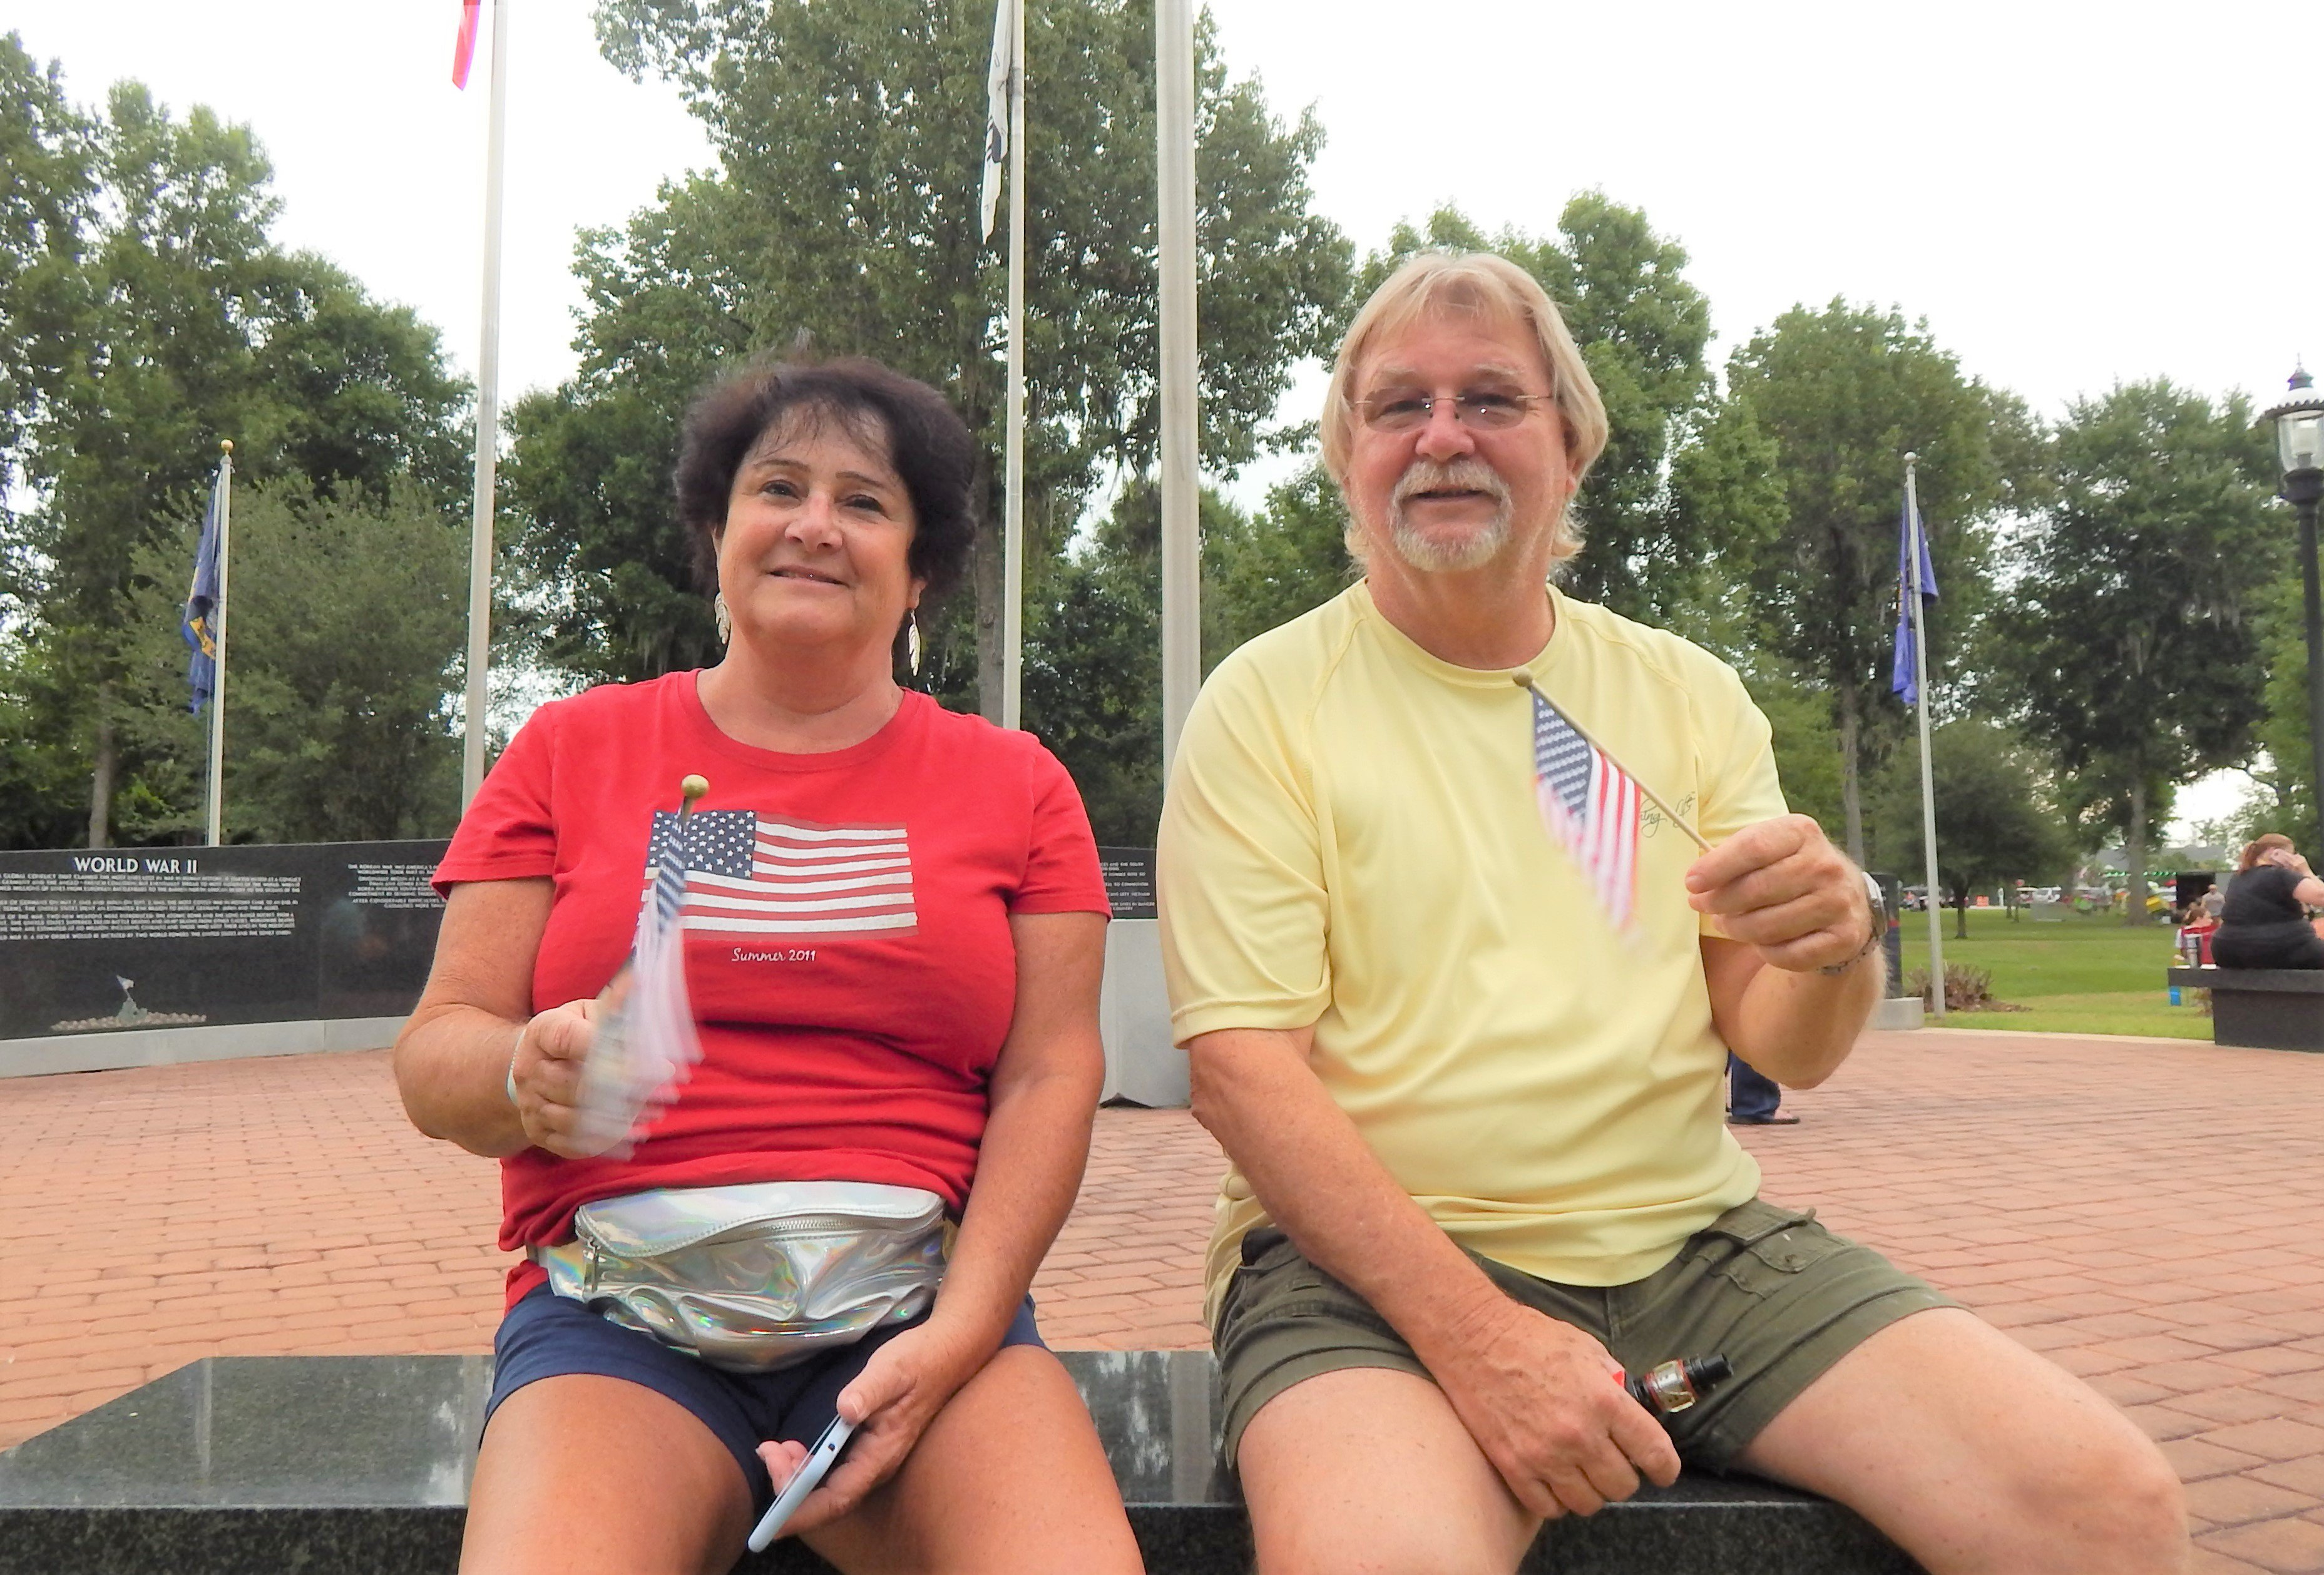 This couple waved their flags as they sat at the war memorial. Photo by Mark Swendra